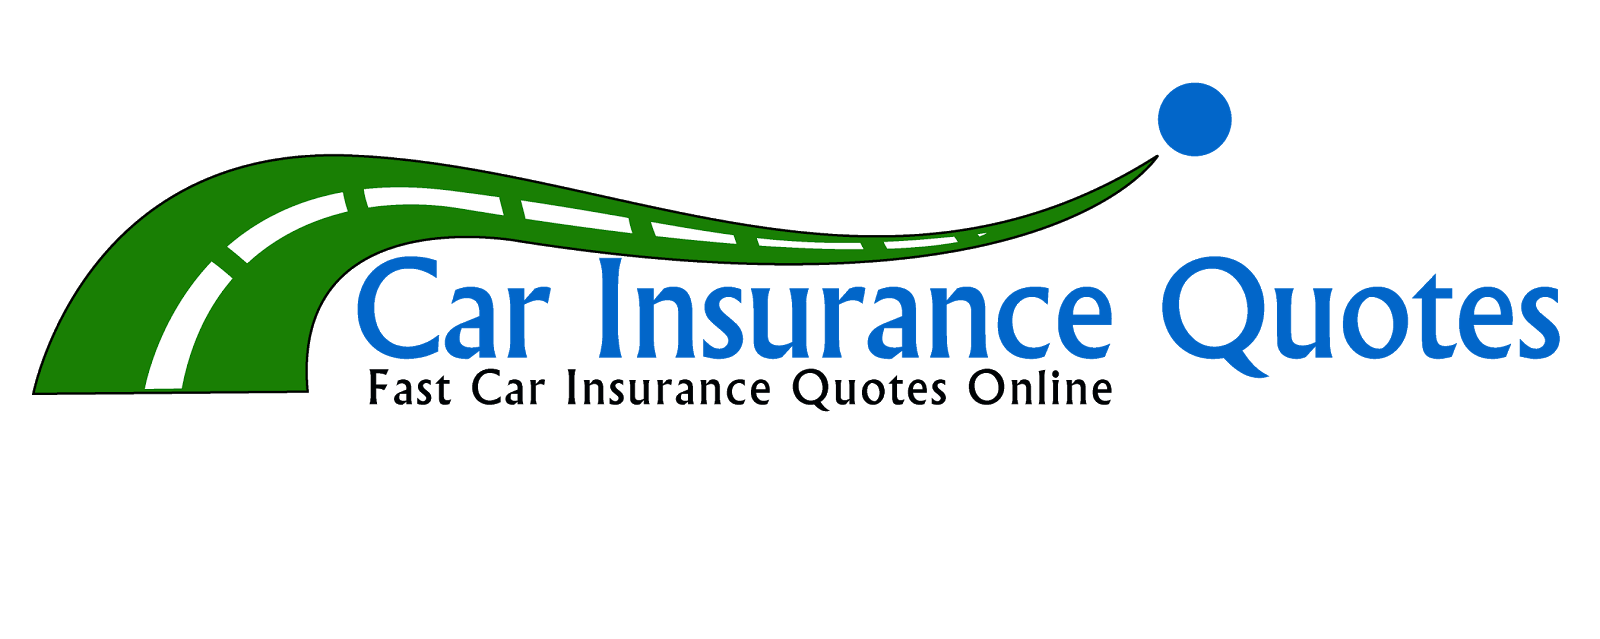 Free Insurance Quote New Free Car Insurance Quotes Online  Places To Visit  Pinterest . Inspiration